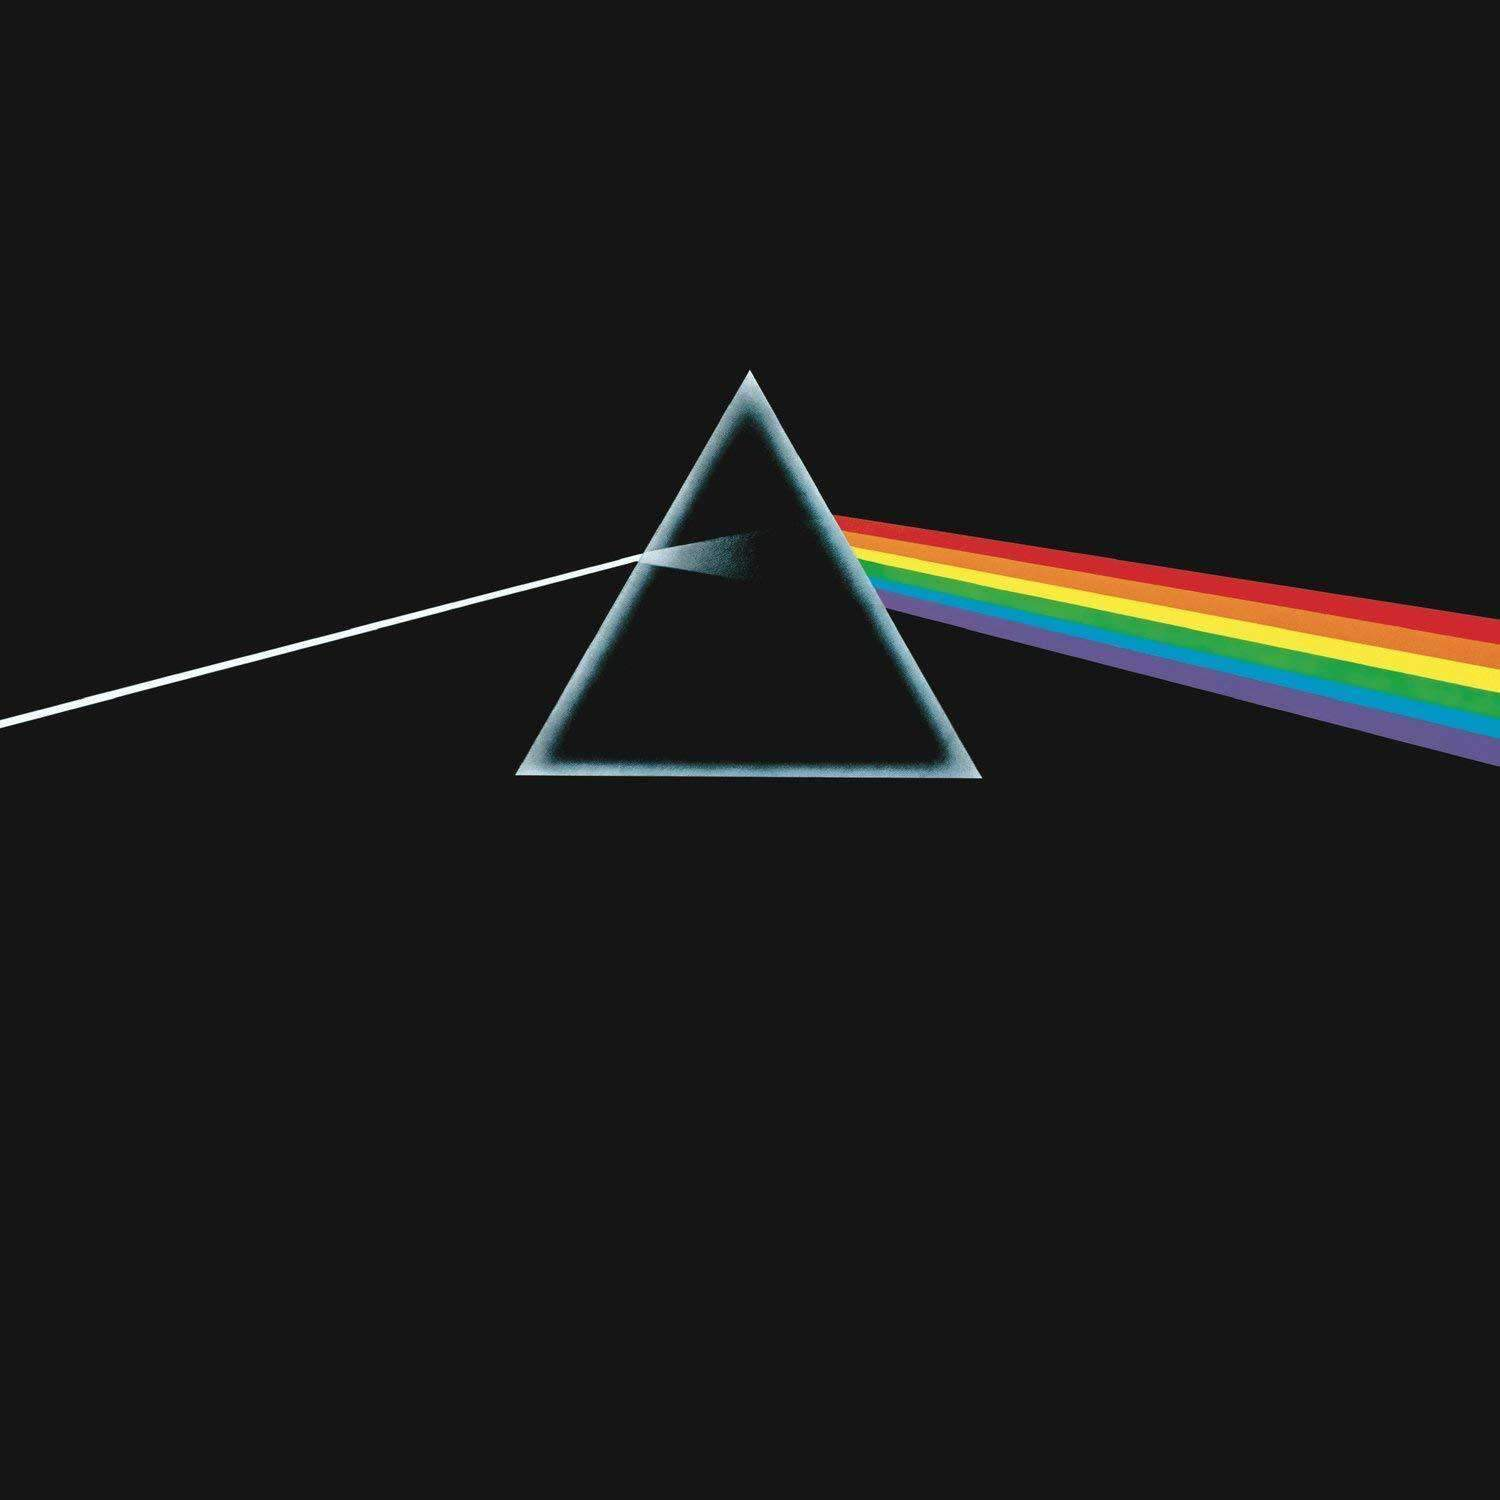 Pink Floyd - The Dark Side Of The Moon [LP] (180 Gram, 2016 version, stereo remastered) - Urban Vinyl | Records, Headphones, and more.